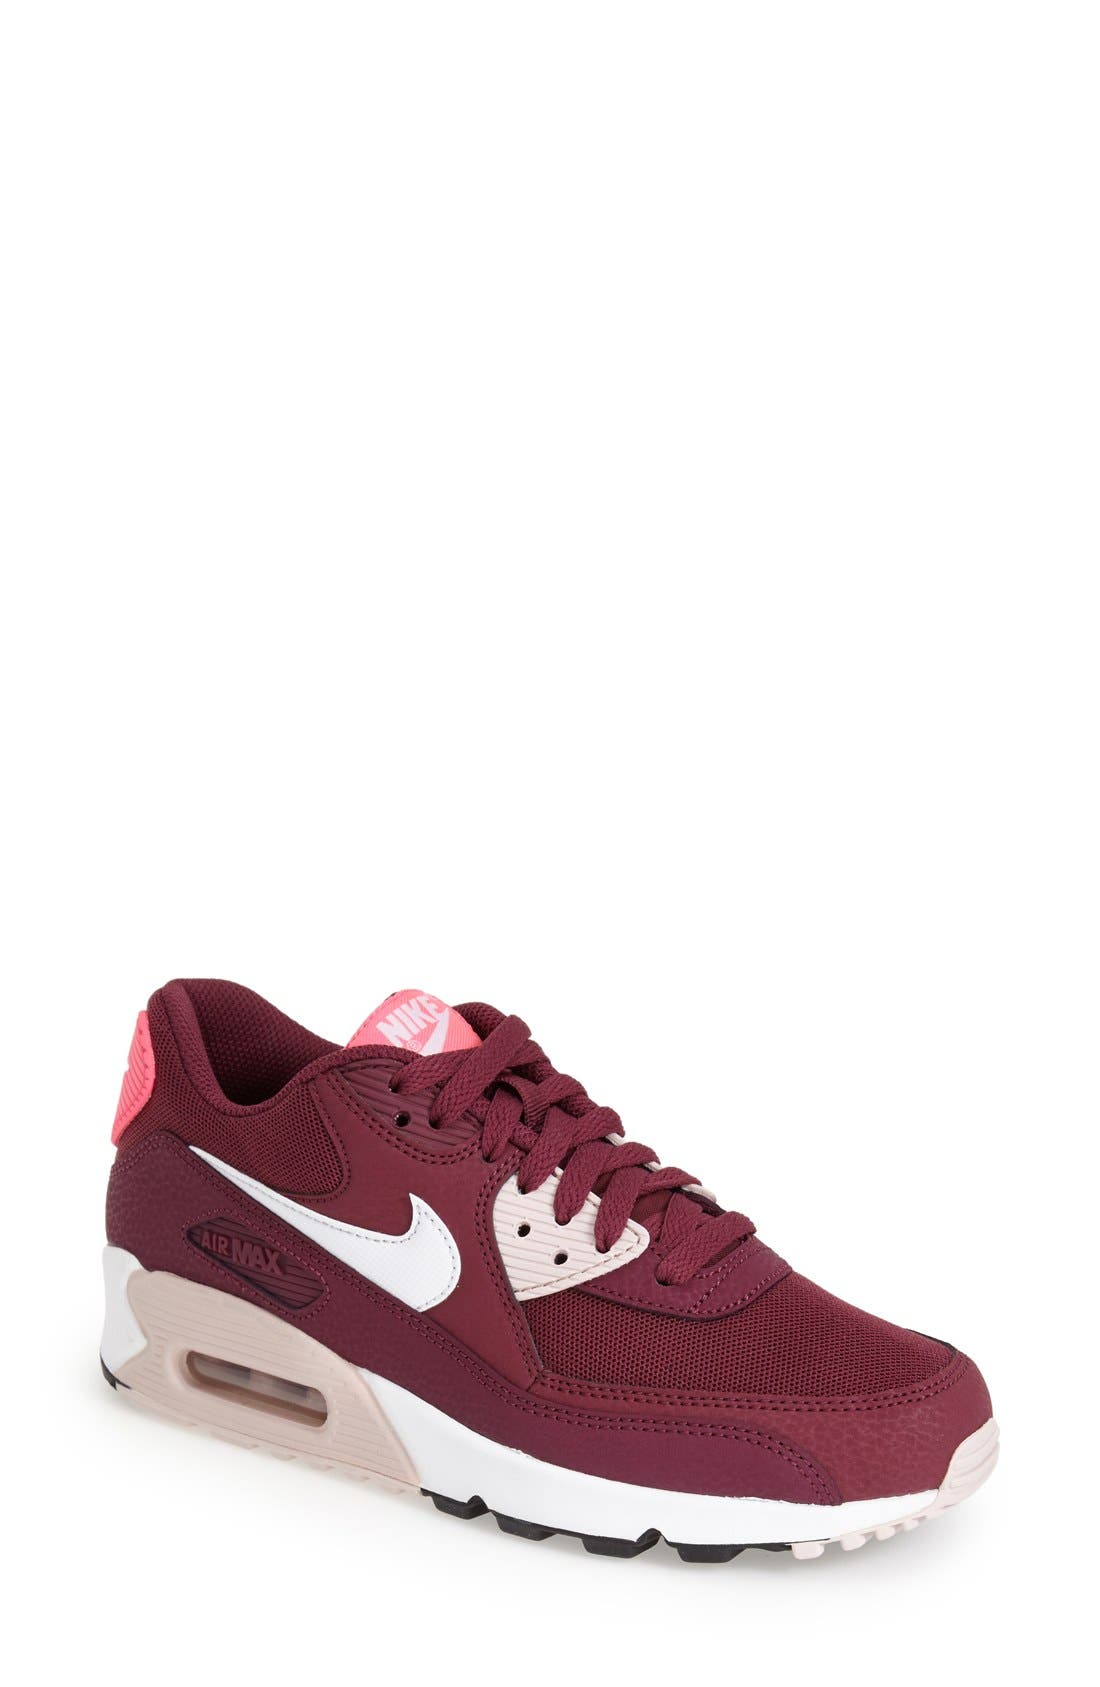 Alternate Image 1 Selected - Nike 'Air Max - Essential' Sneaker (Women)